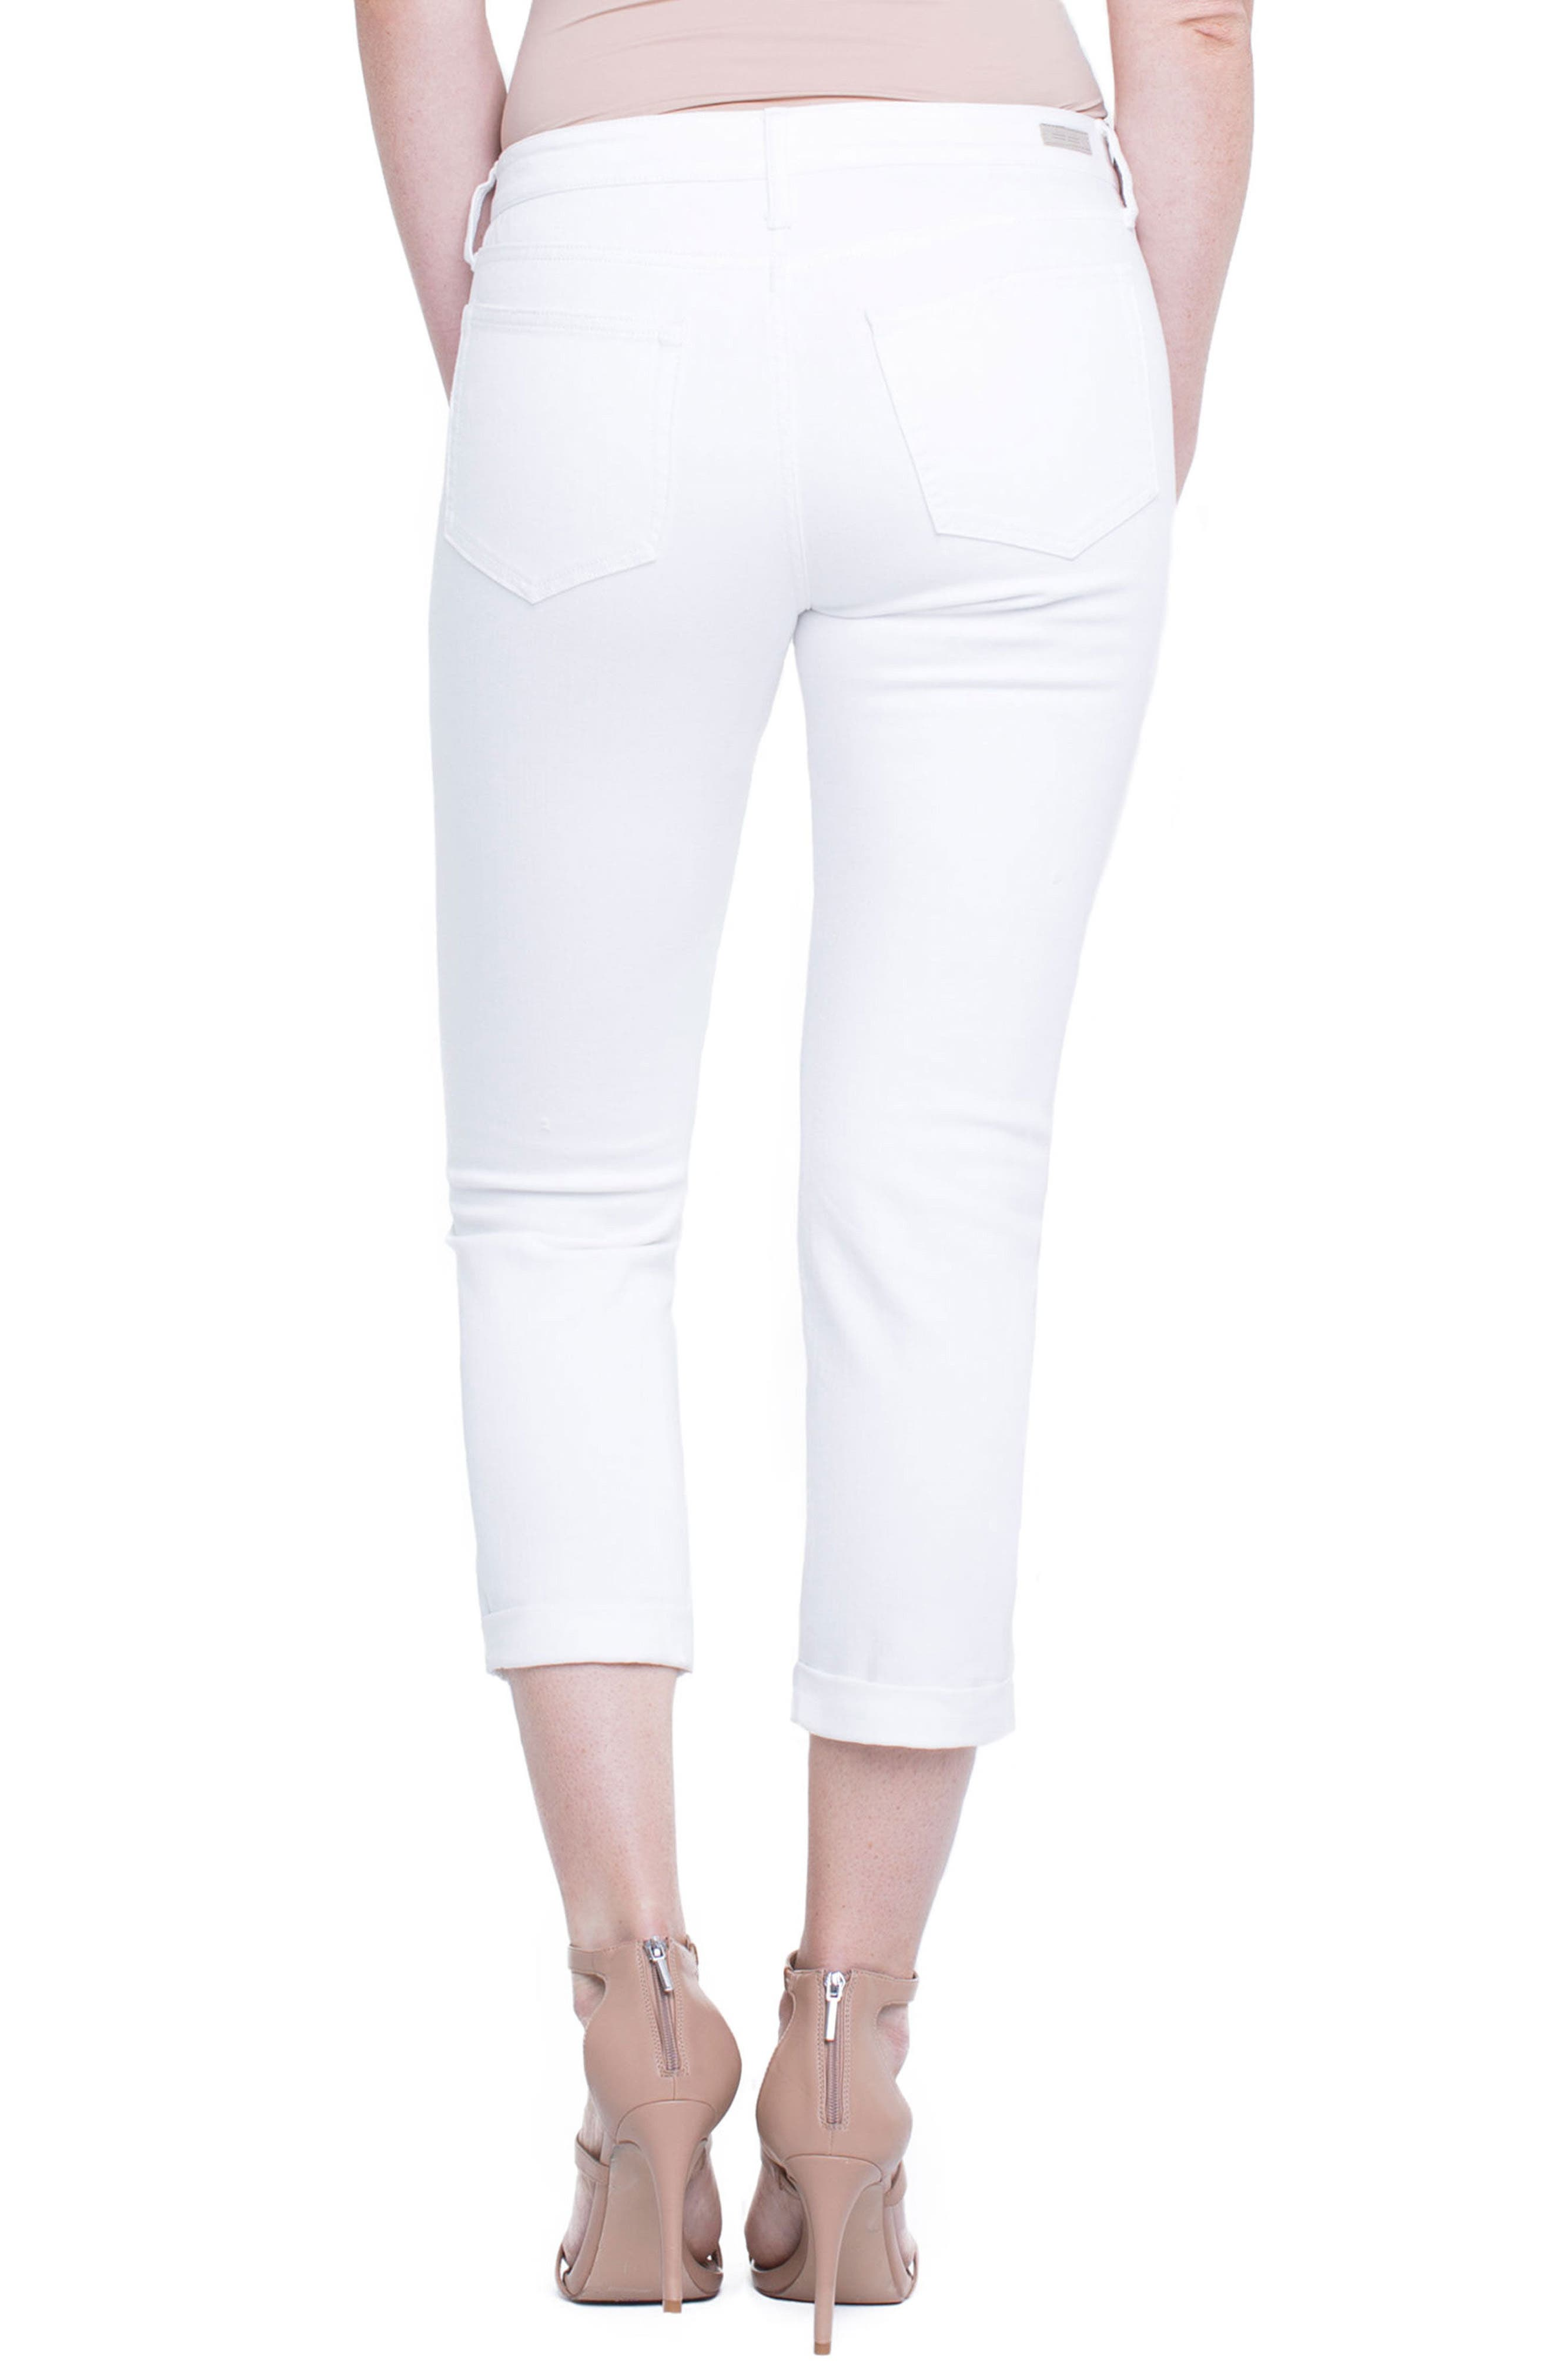 Marley Girlfriend Jeans,                             Alternate thumbnail 2, color,                             Luna White Mended